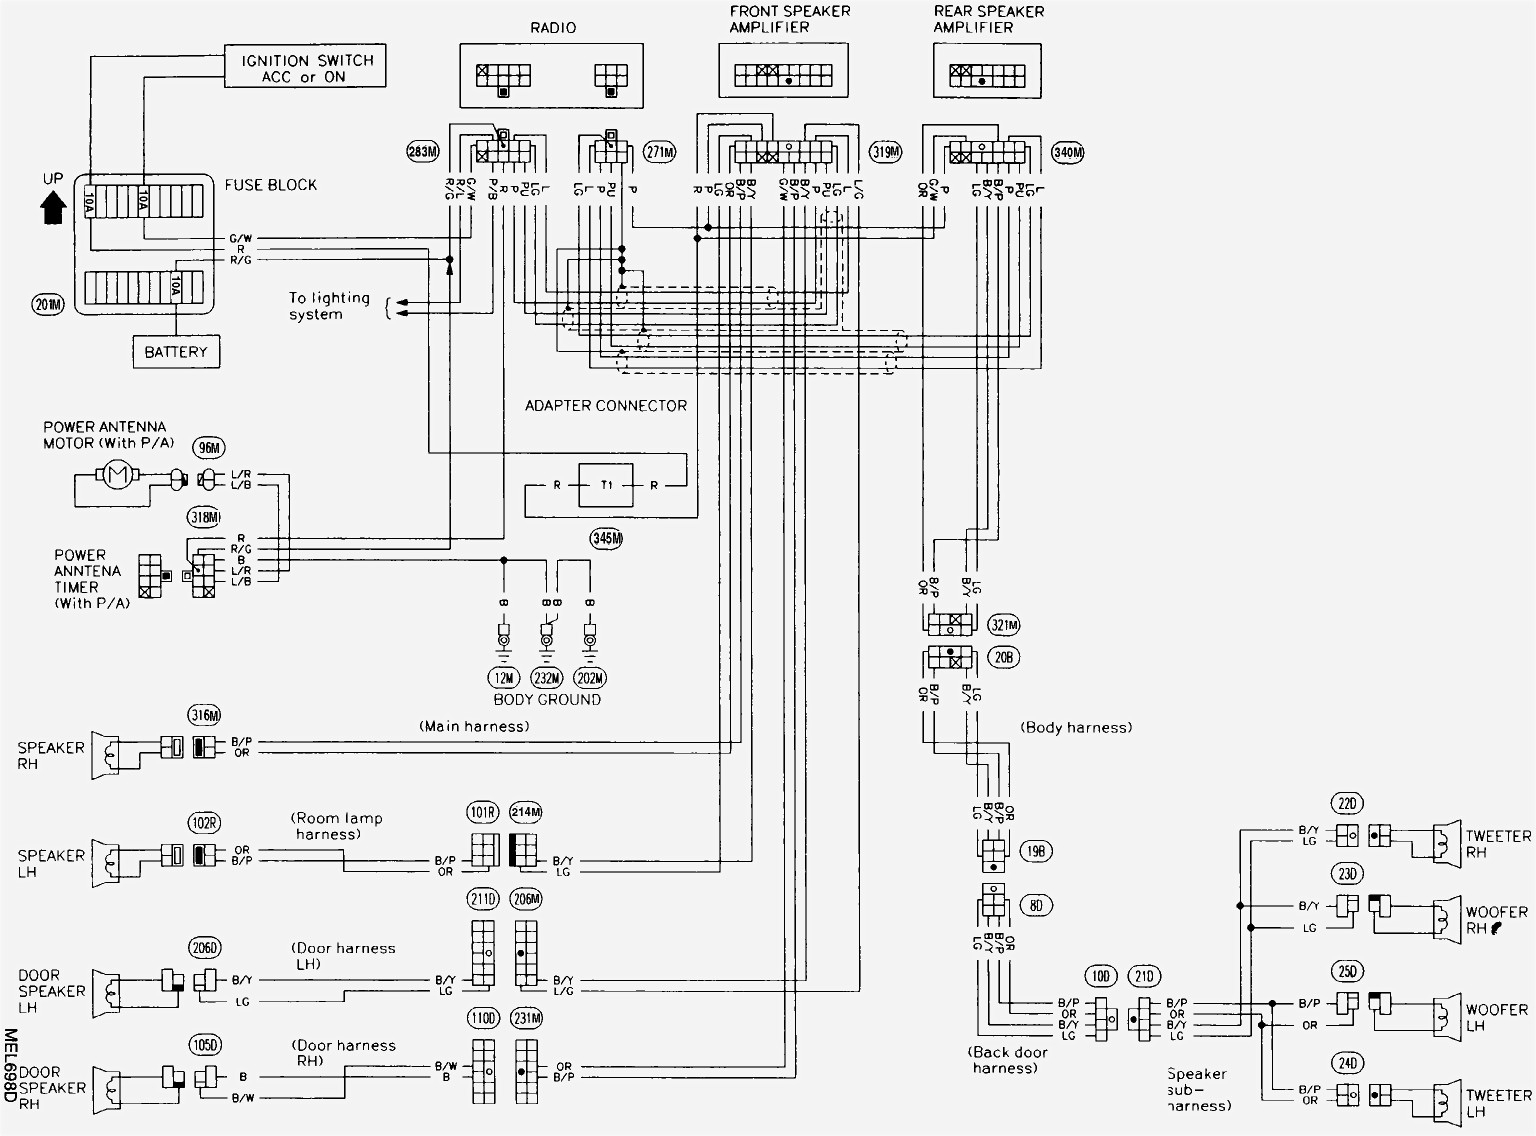 true freezer t 49f wiring diagram Collection-True T49f Wiring Diagram Download True Freezer T 49f Wiring Diagram Image 3 r 18-f